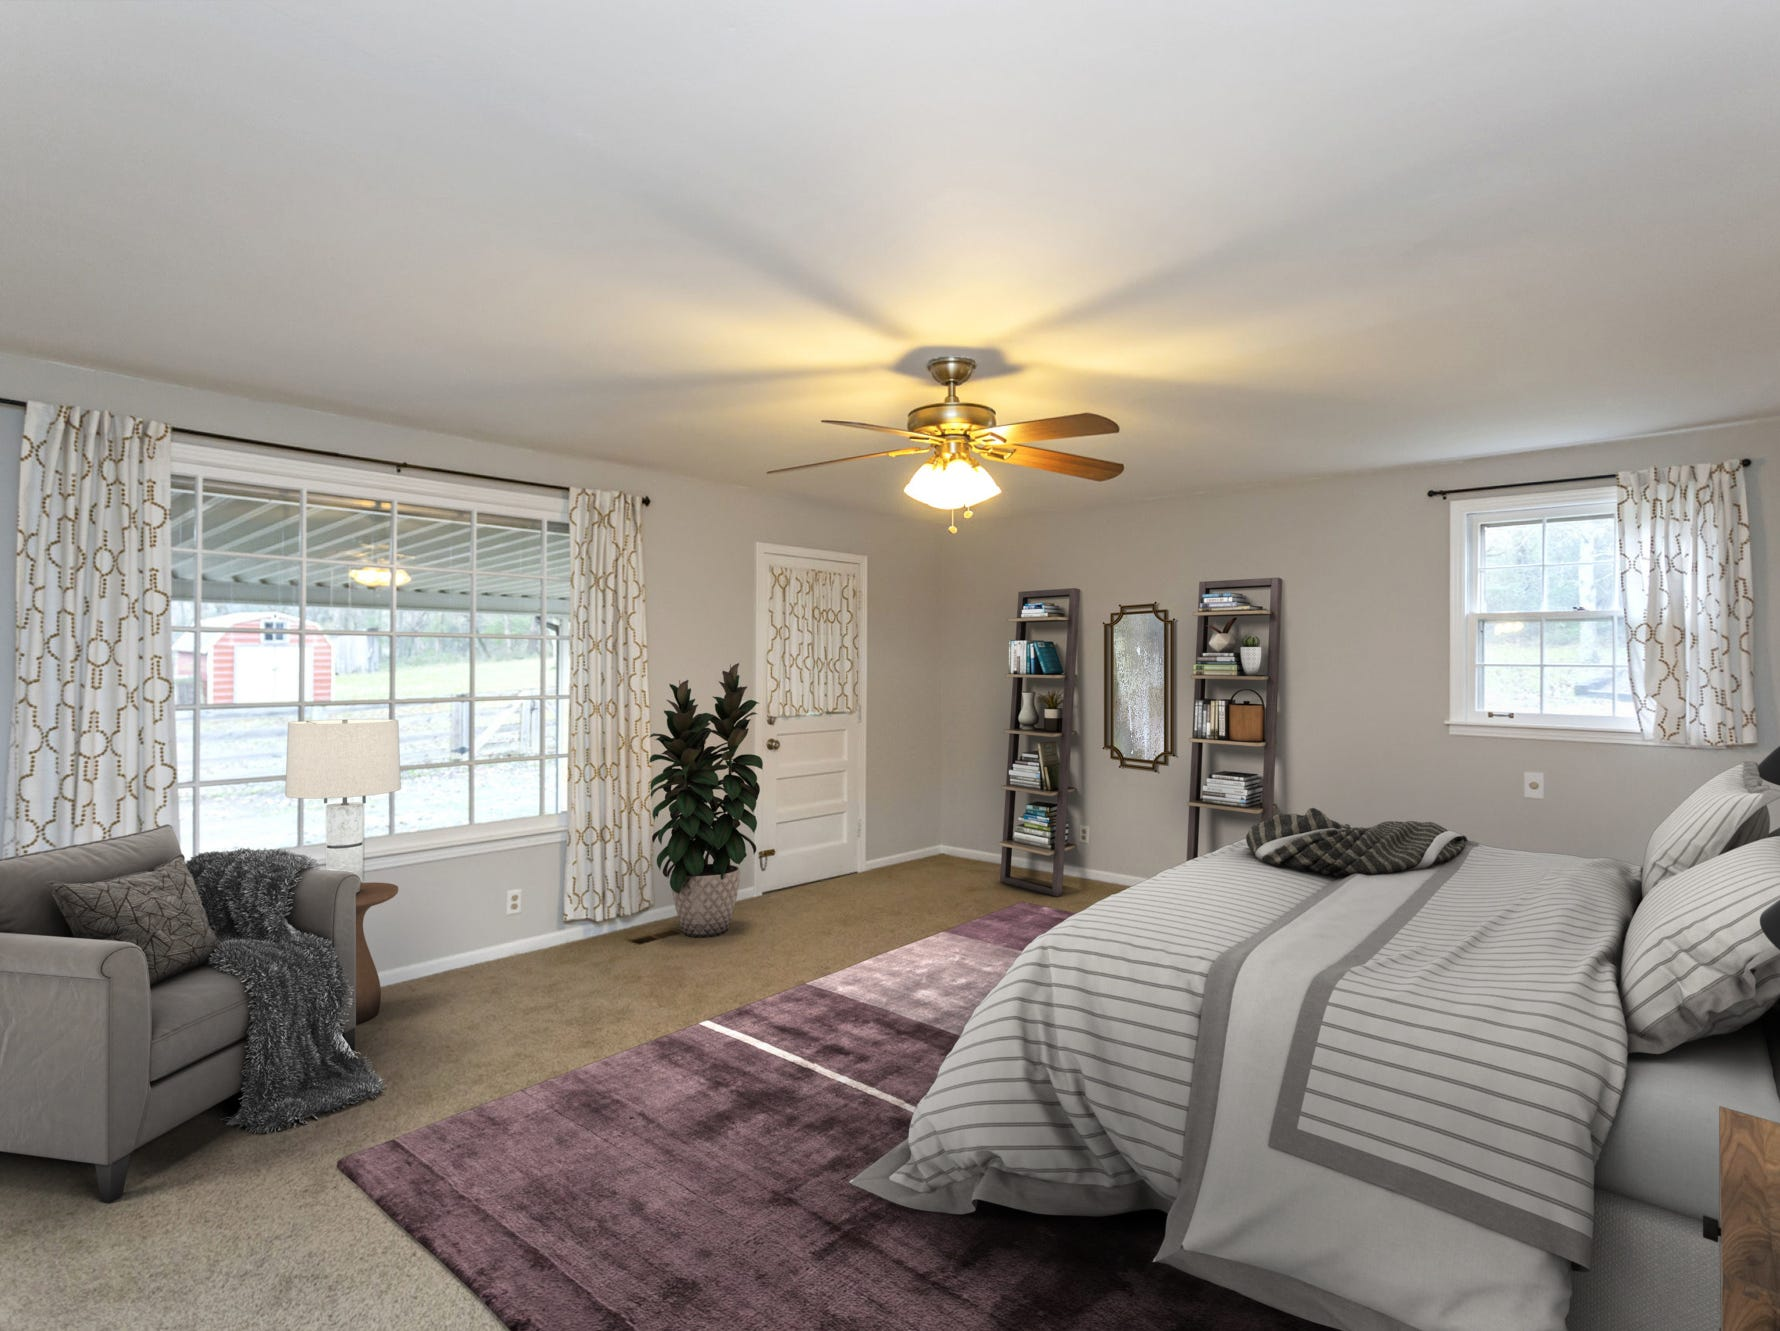 This photo shows the home's master bedroom after virtual staging software was used to furnish the room. This gives home buyers a look at the room with furnishings in it.